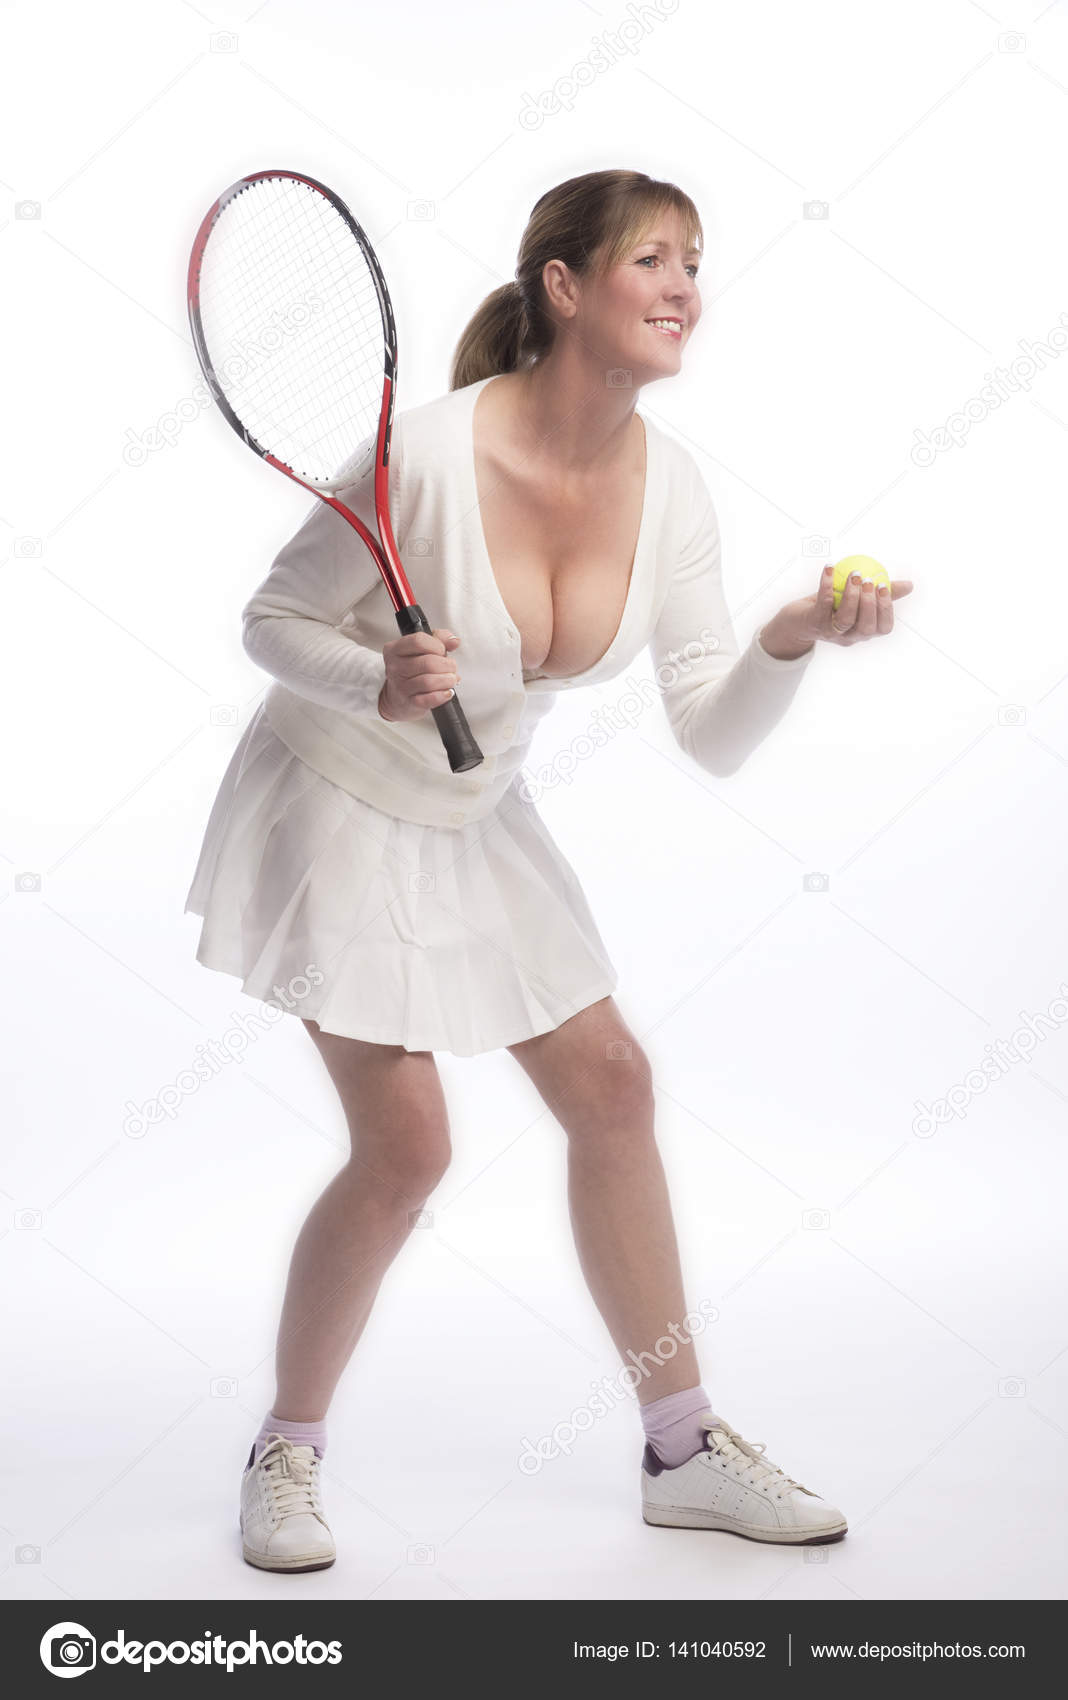 woman tennis player in a revealing shirt — stock photo © petertt